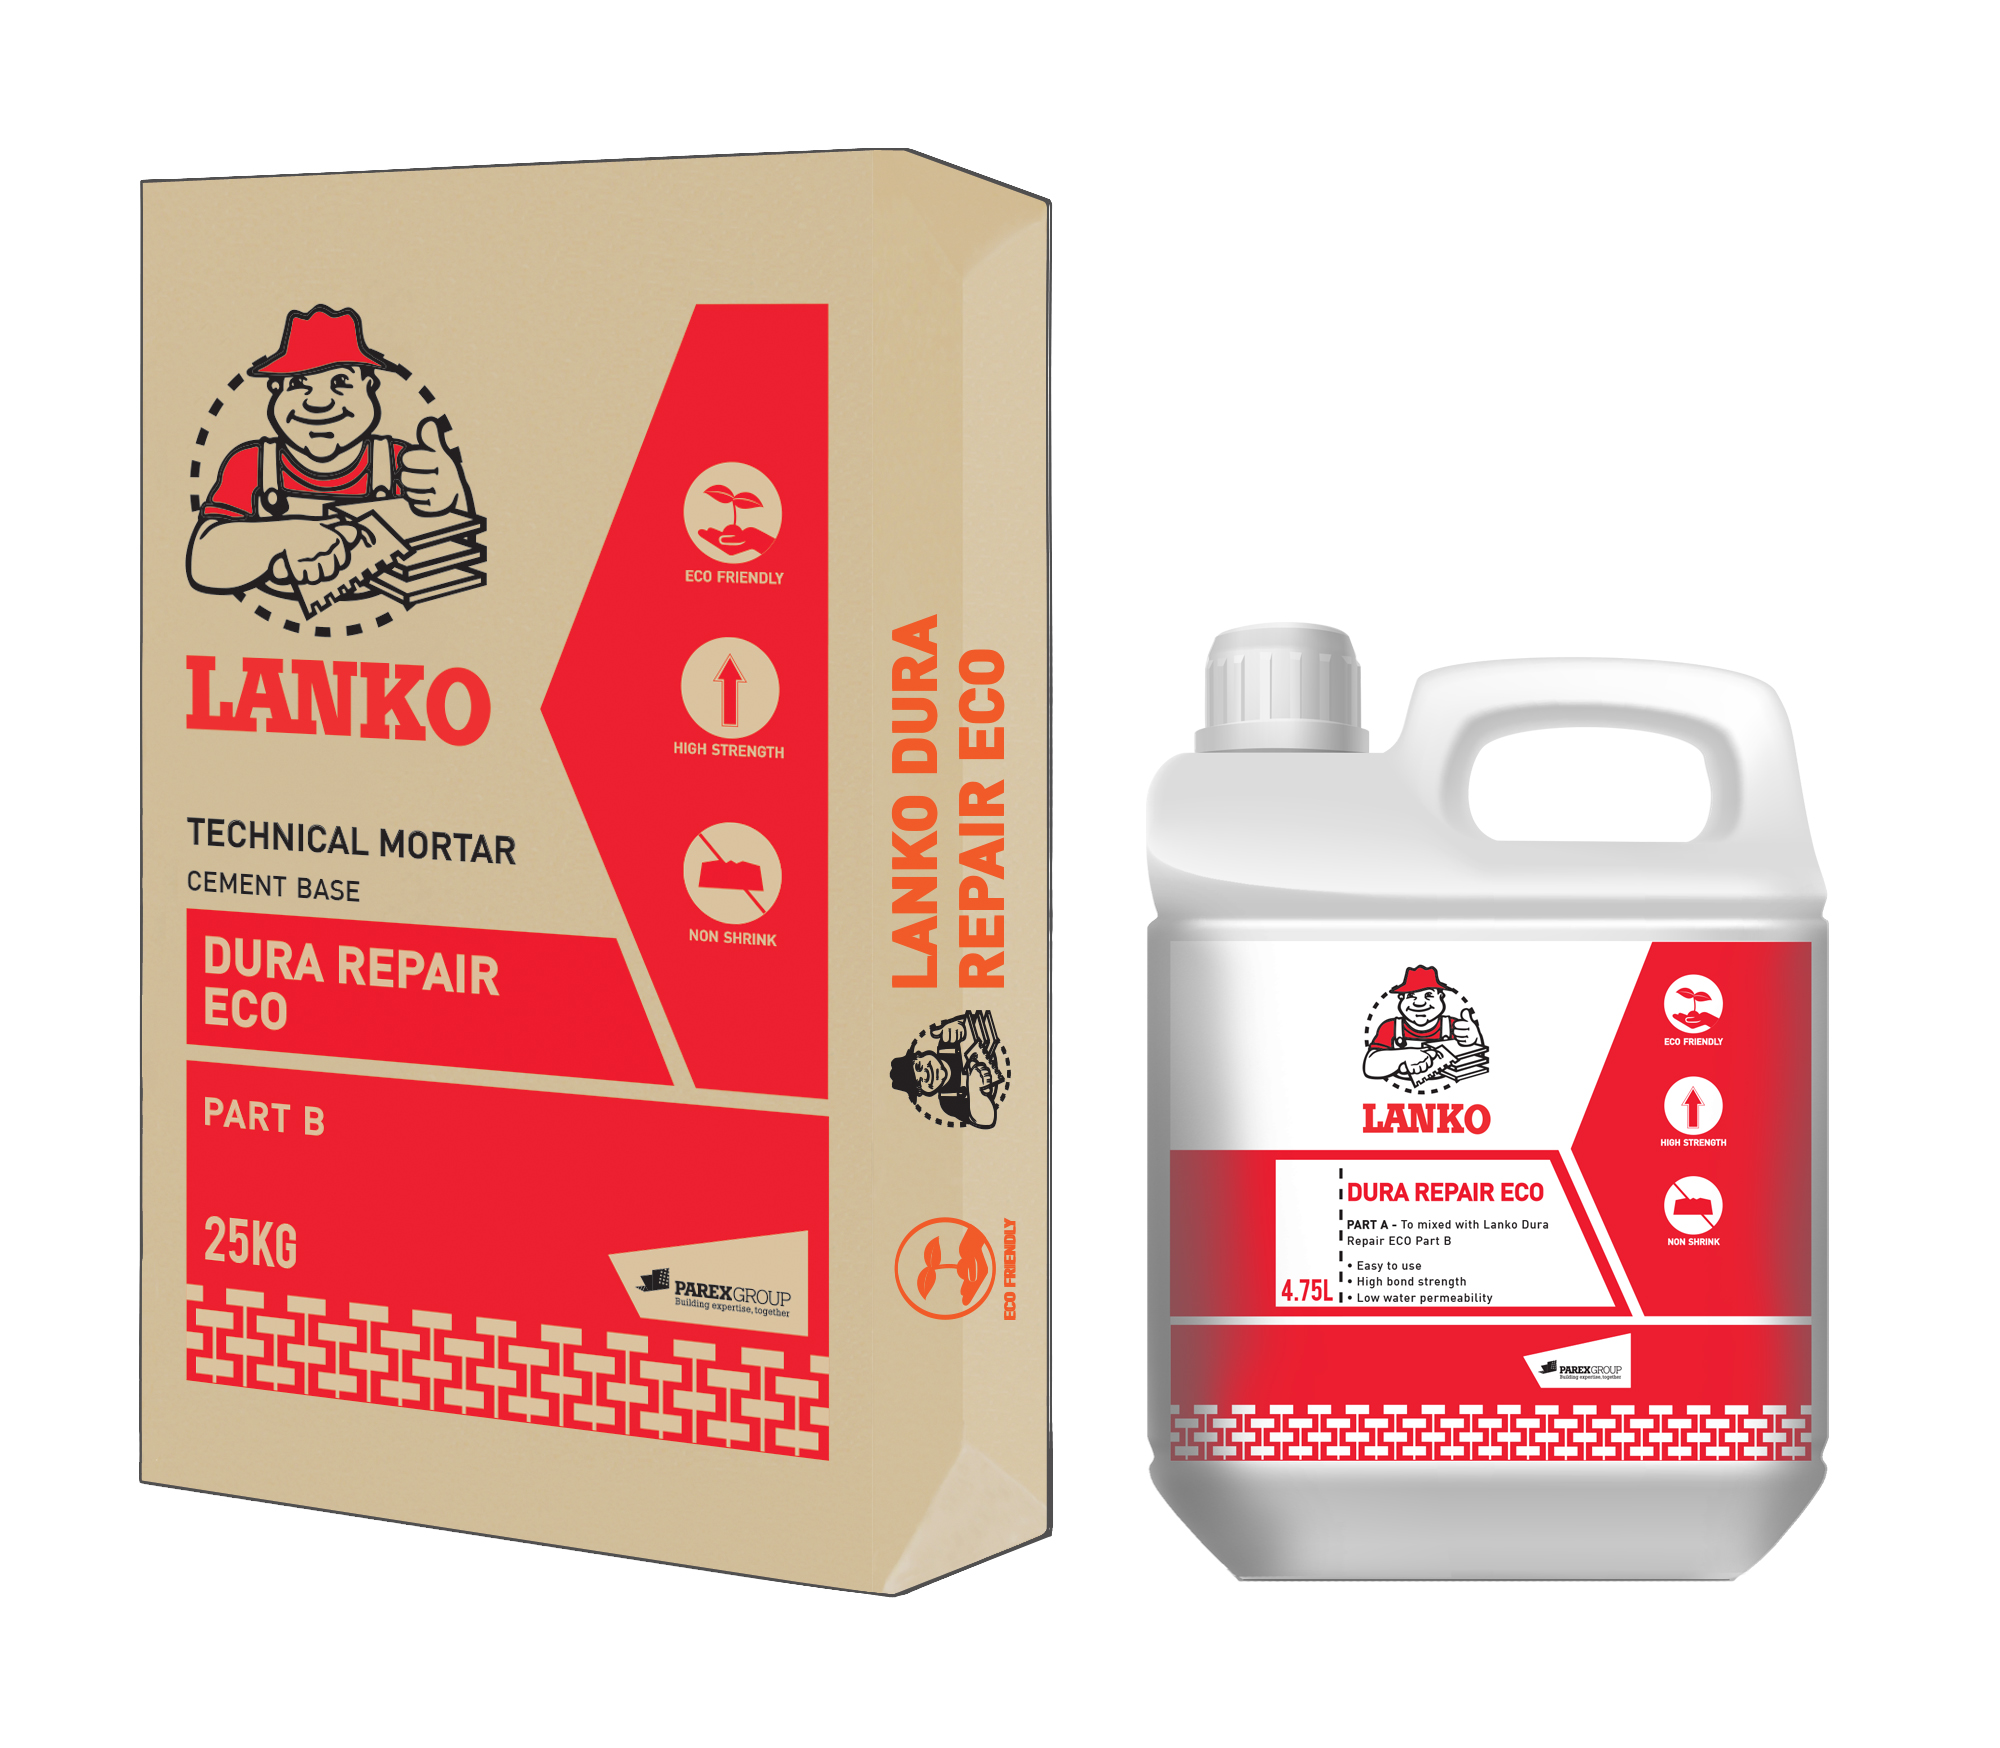 Lanko Dura Repair ECO